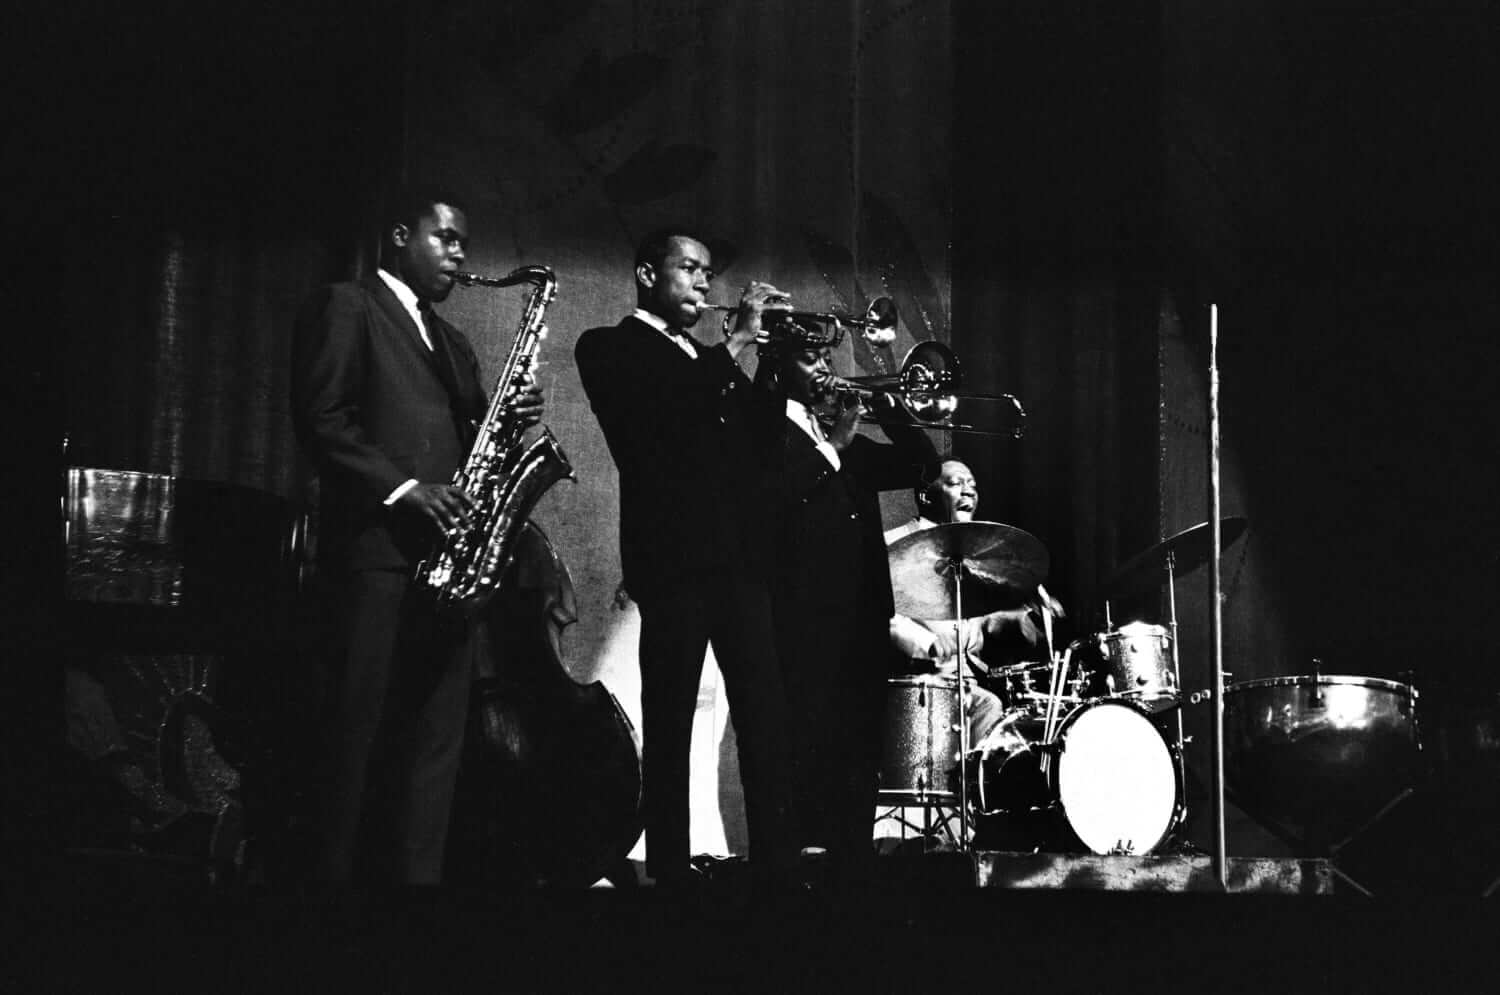 Wayne Shorter, Freddie Hubbard, Curtis Fuller with Art Blakey at the Apollo Theater in Harlem, New York in 1964 (photo: https://www.rte.ie)